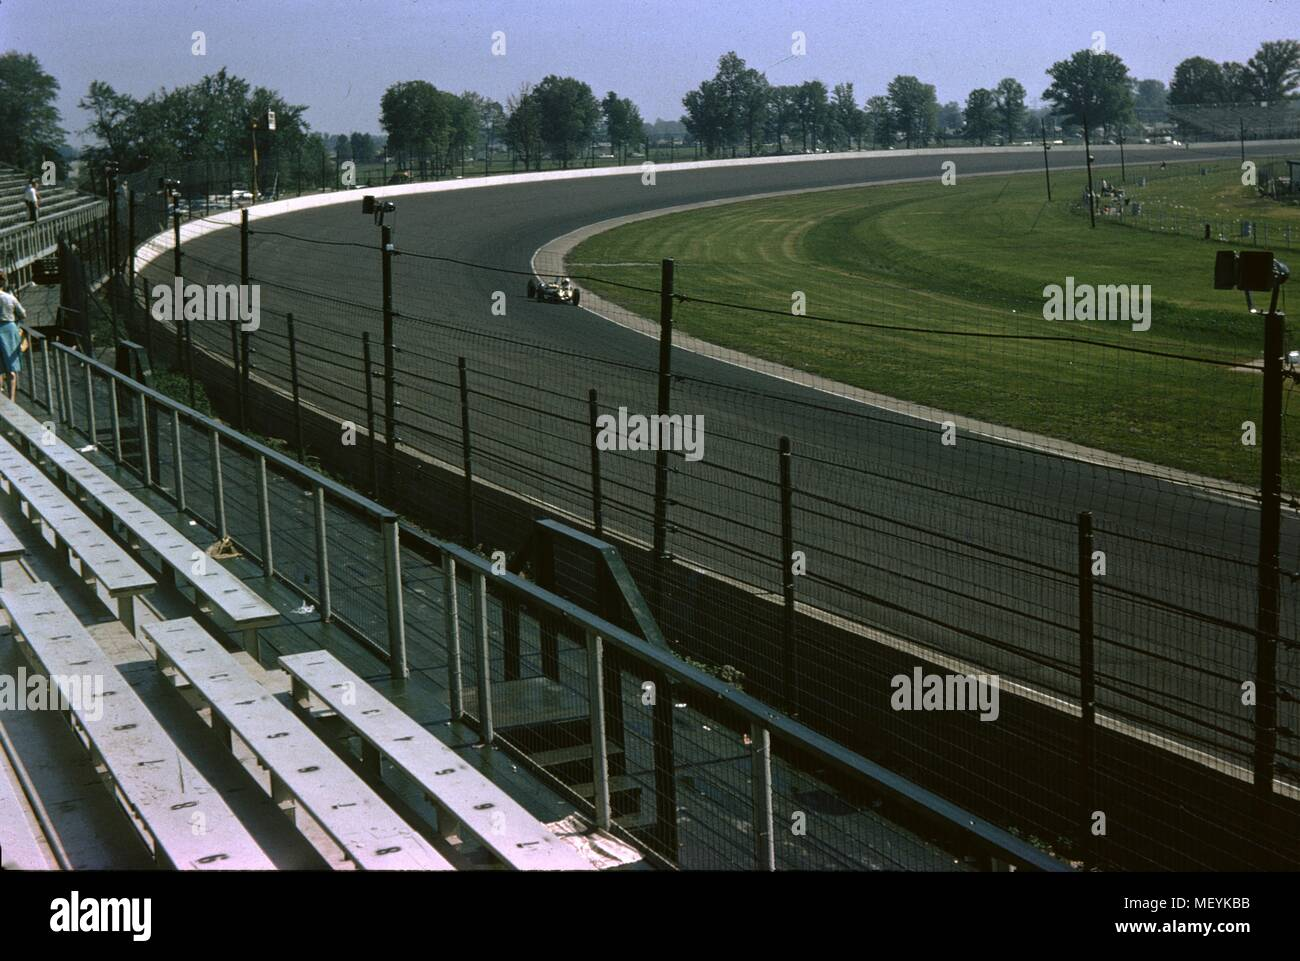 Race cars and empty bleechers are visible at the Indianapolis 500 ...